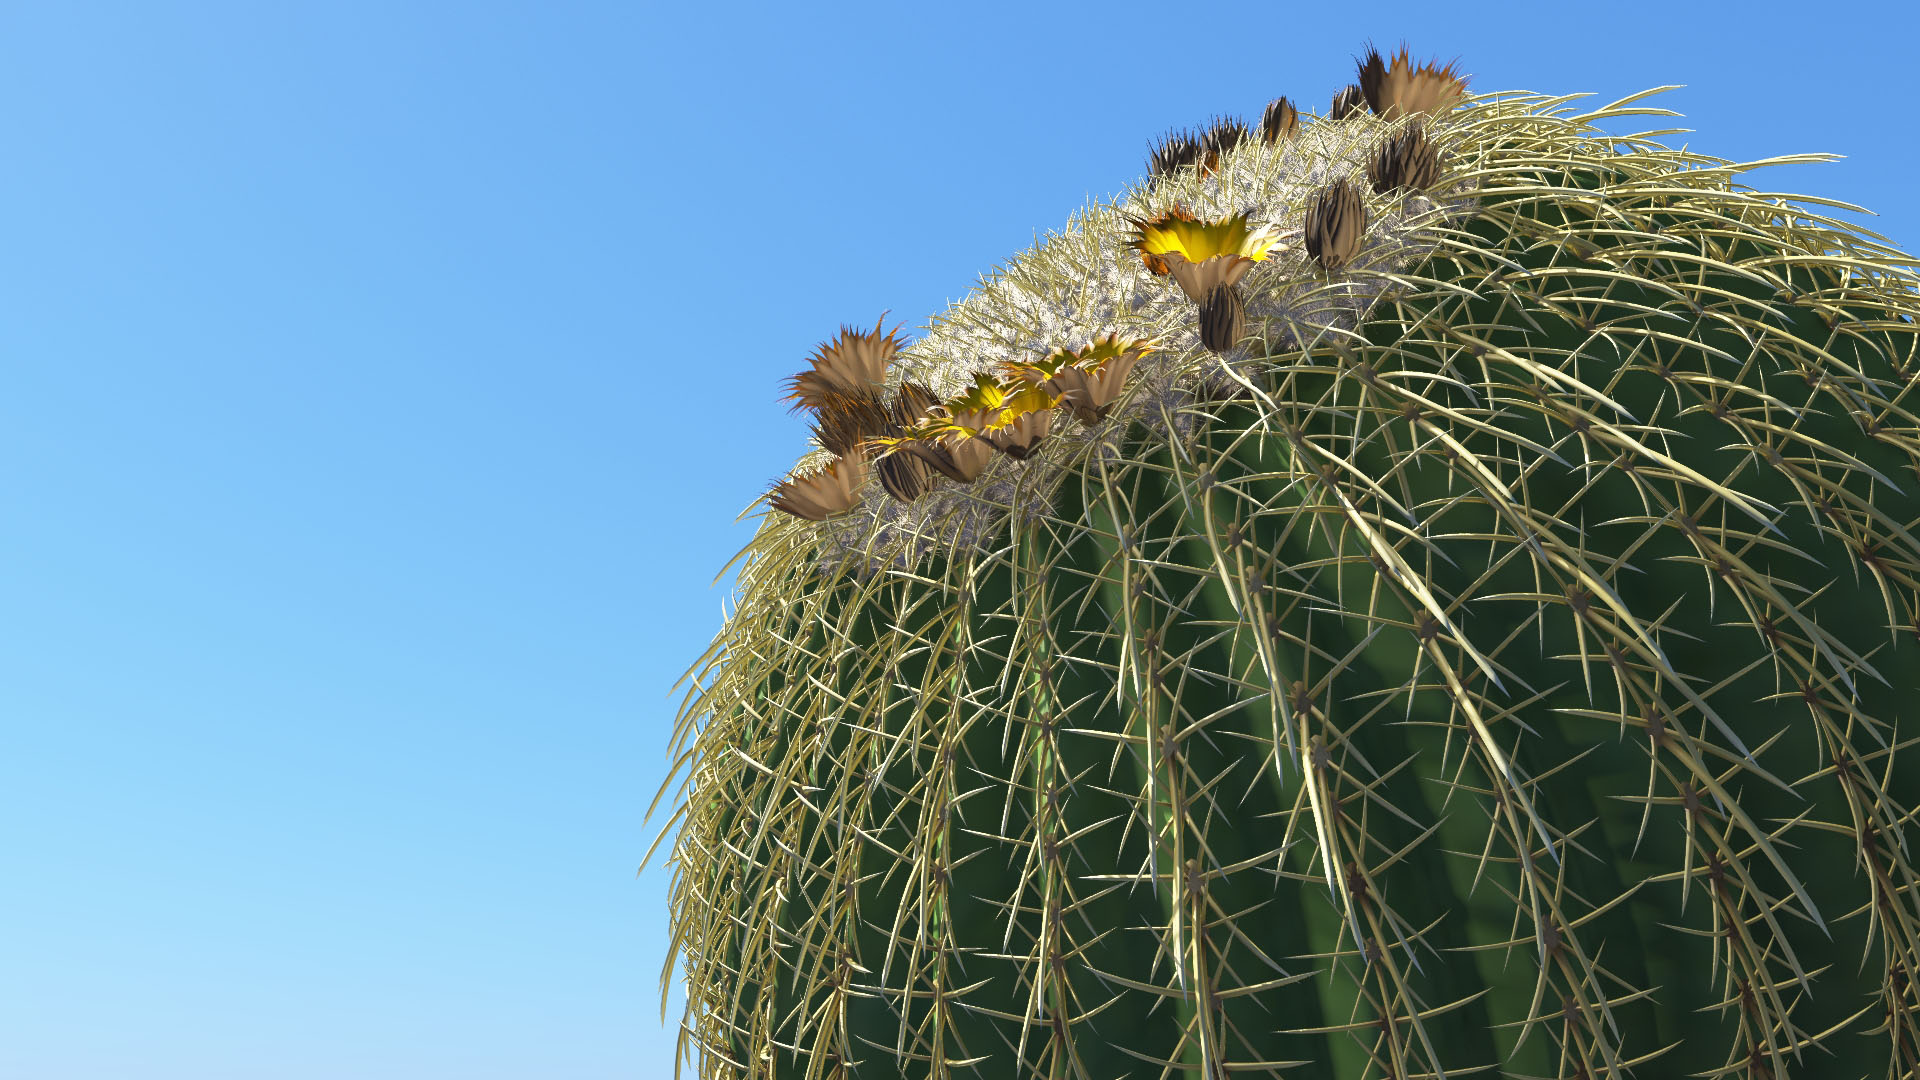 3D model of the Golden barrel cactus Echinocactus grusonii close-up